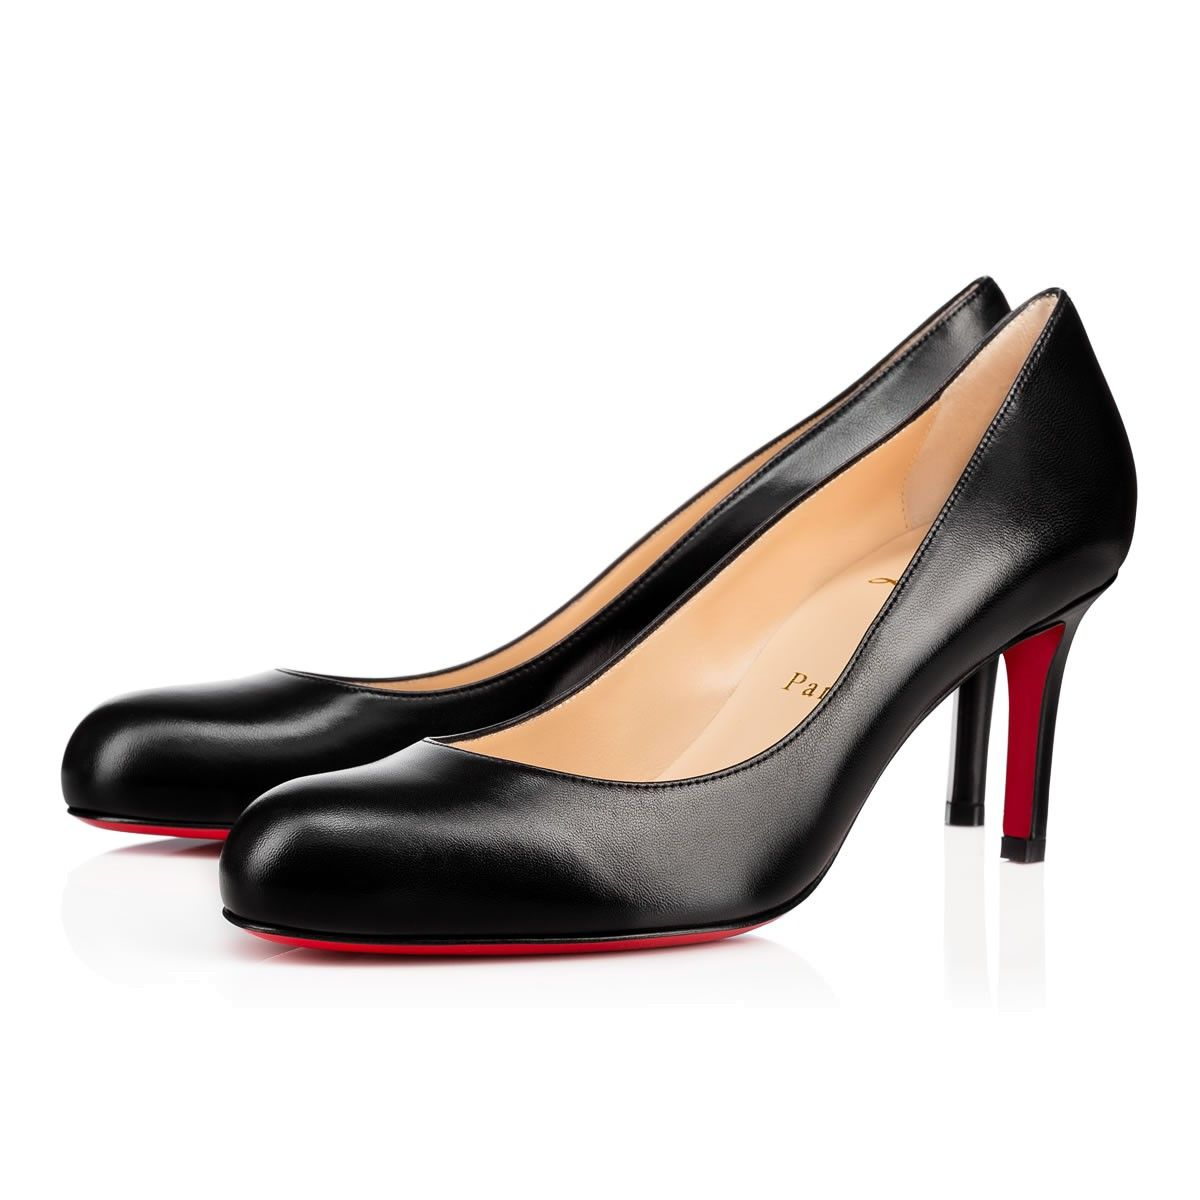 72452f7d1ad Simple Pump 70mm Black Leather | Cani | Shoes, Pumps, Red bottom heels